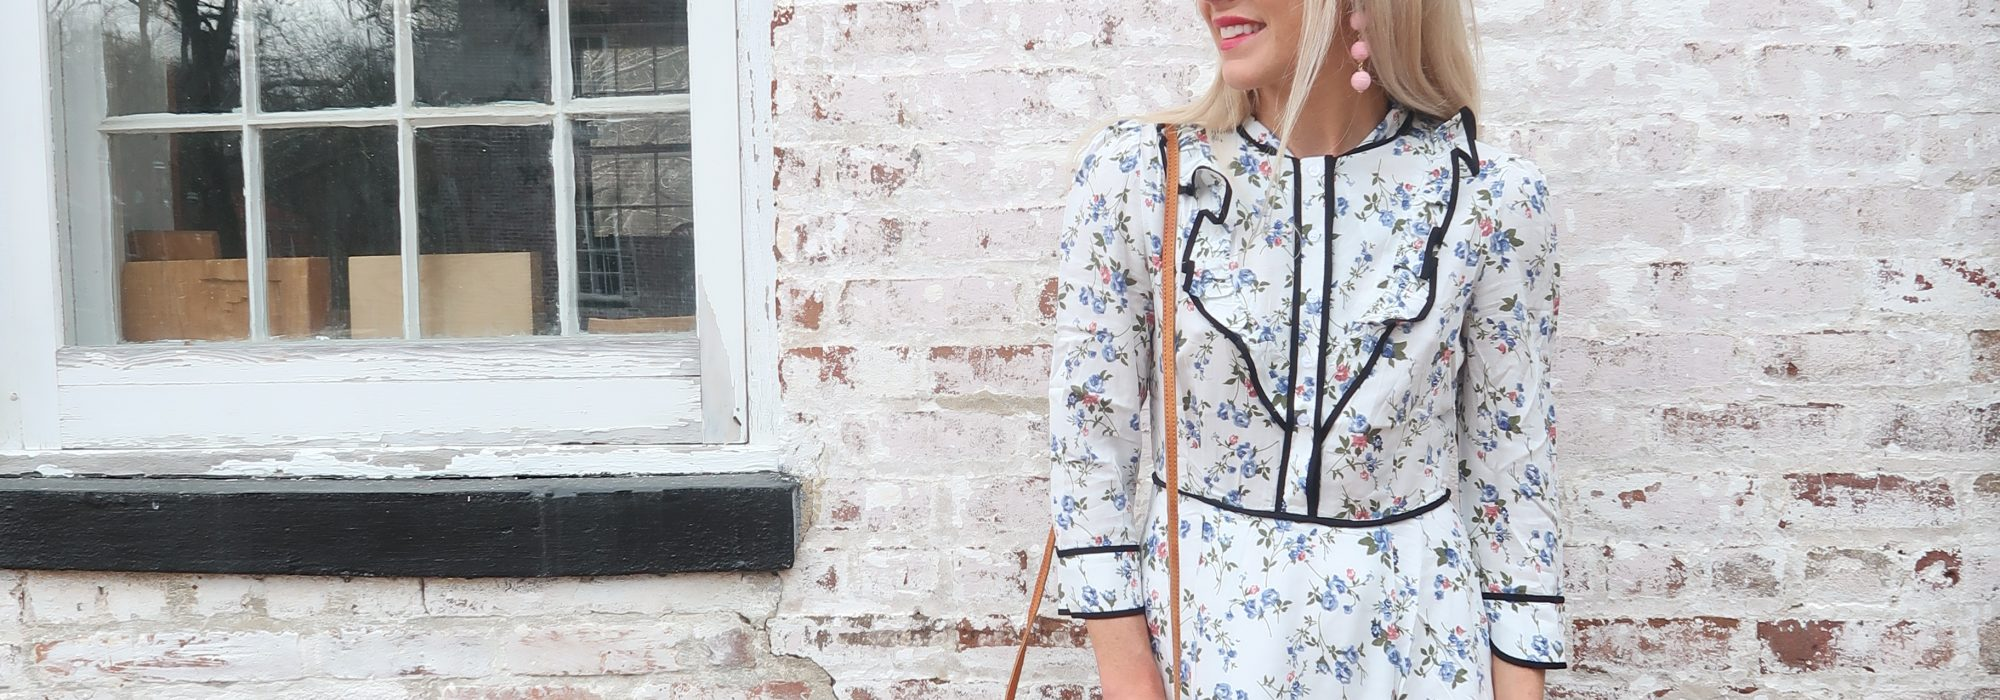 Styles of the Week | Spring Style